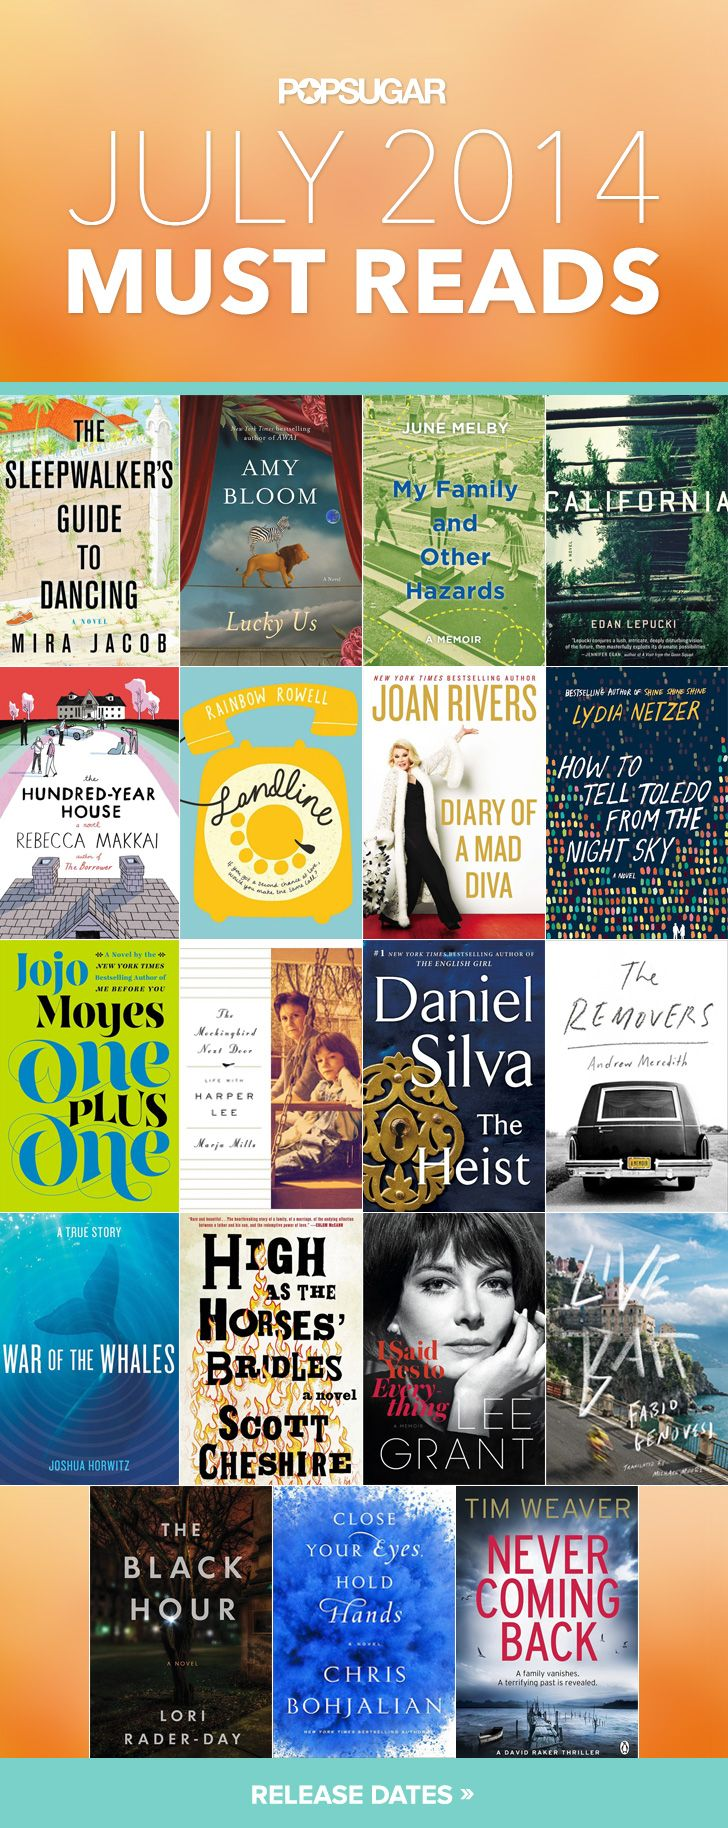 July 2014 Must Reads - ALL THE BOOKS LOOK GREAT, EXCEPT JOAN RIVERS.  I'M NOT A FAN SO I'LL PASS ON THIS ONE.